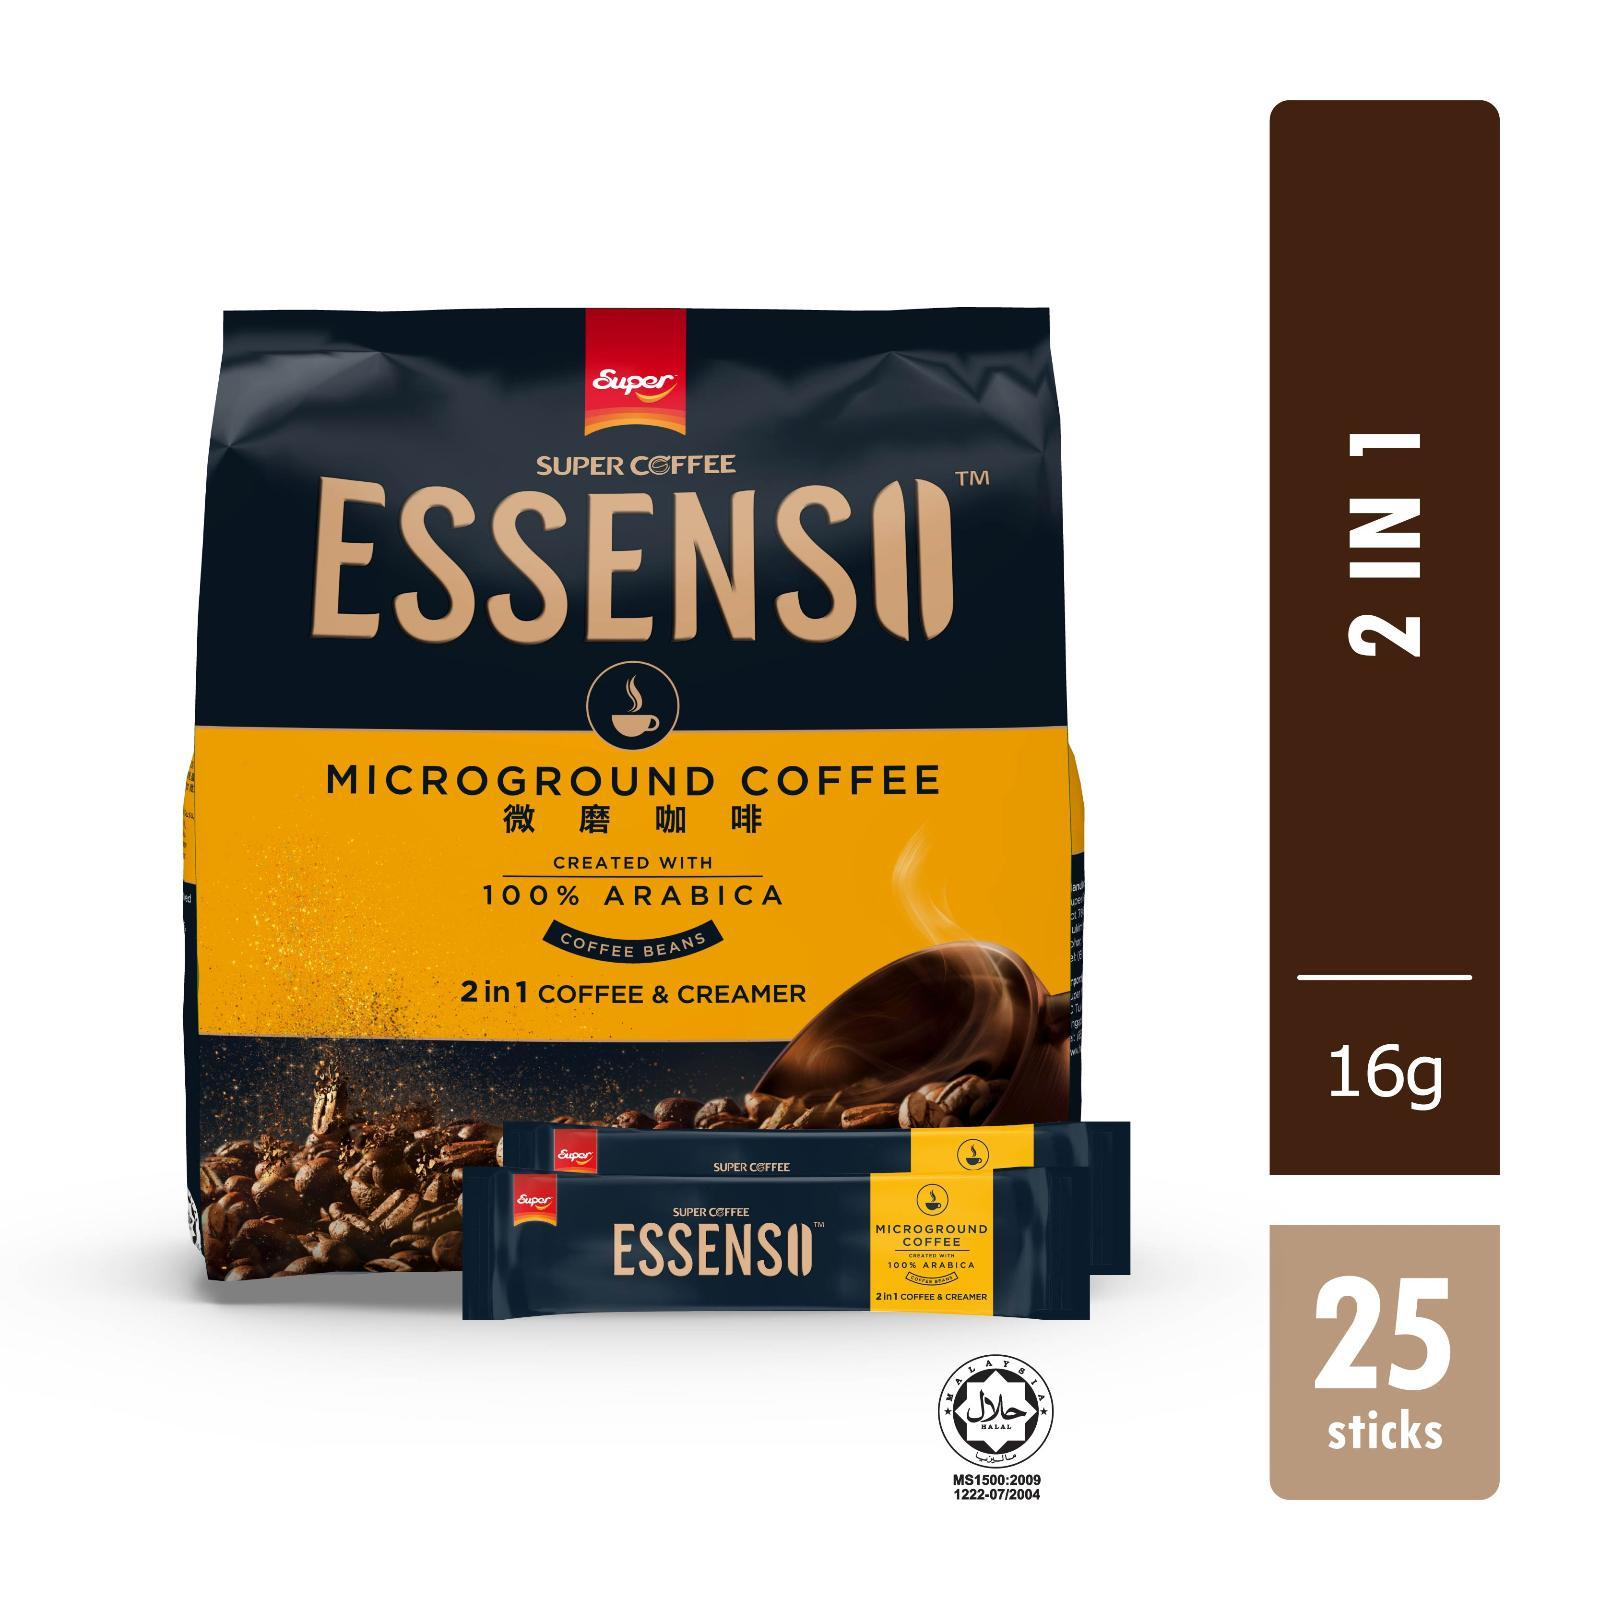 Super Essenso MicroGround Coffee - 2 In 1 Coffee And Creamer